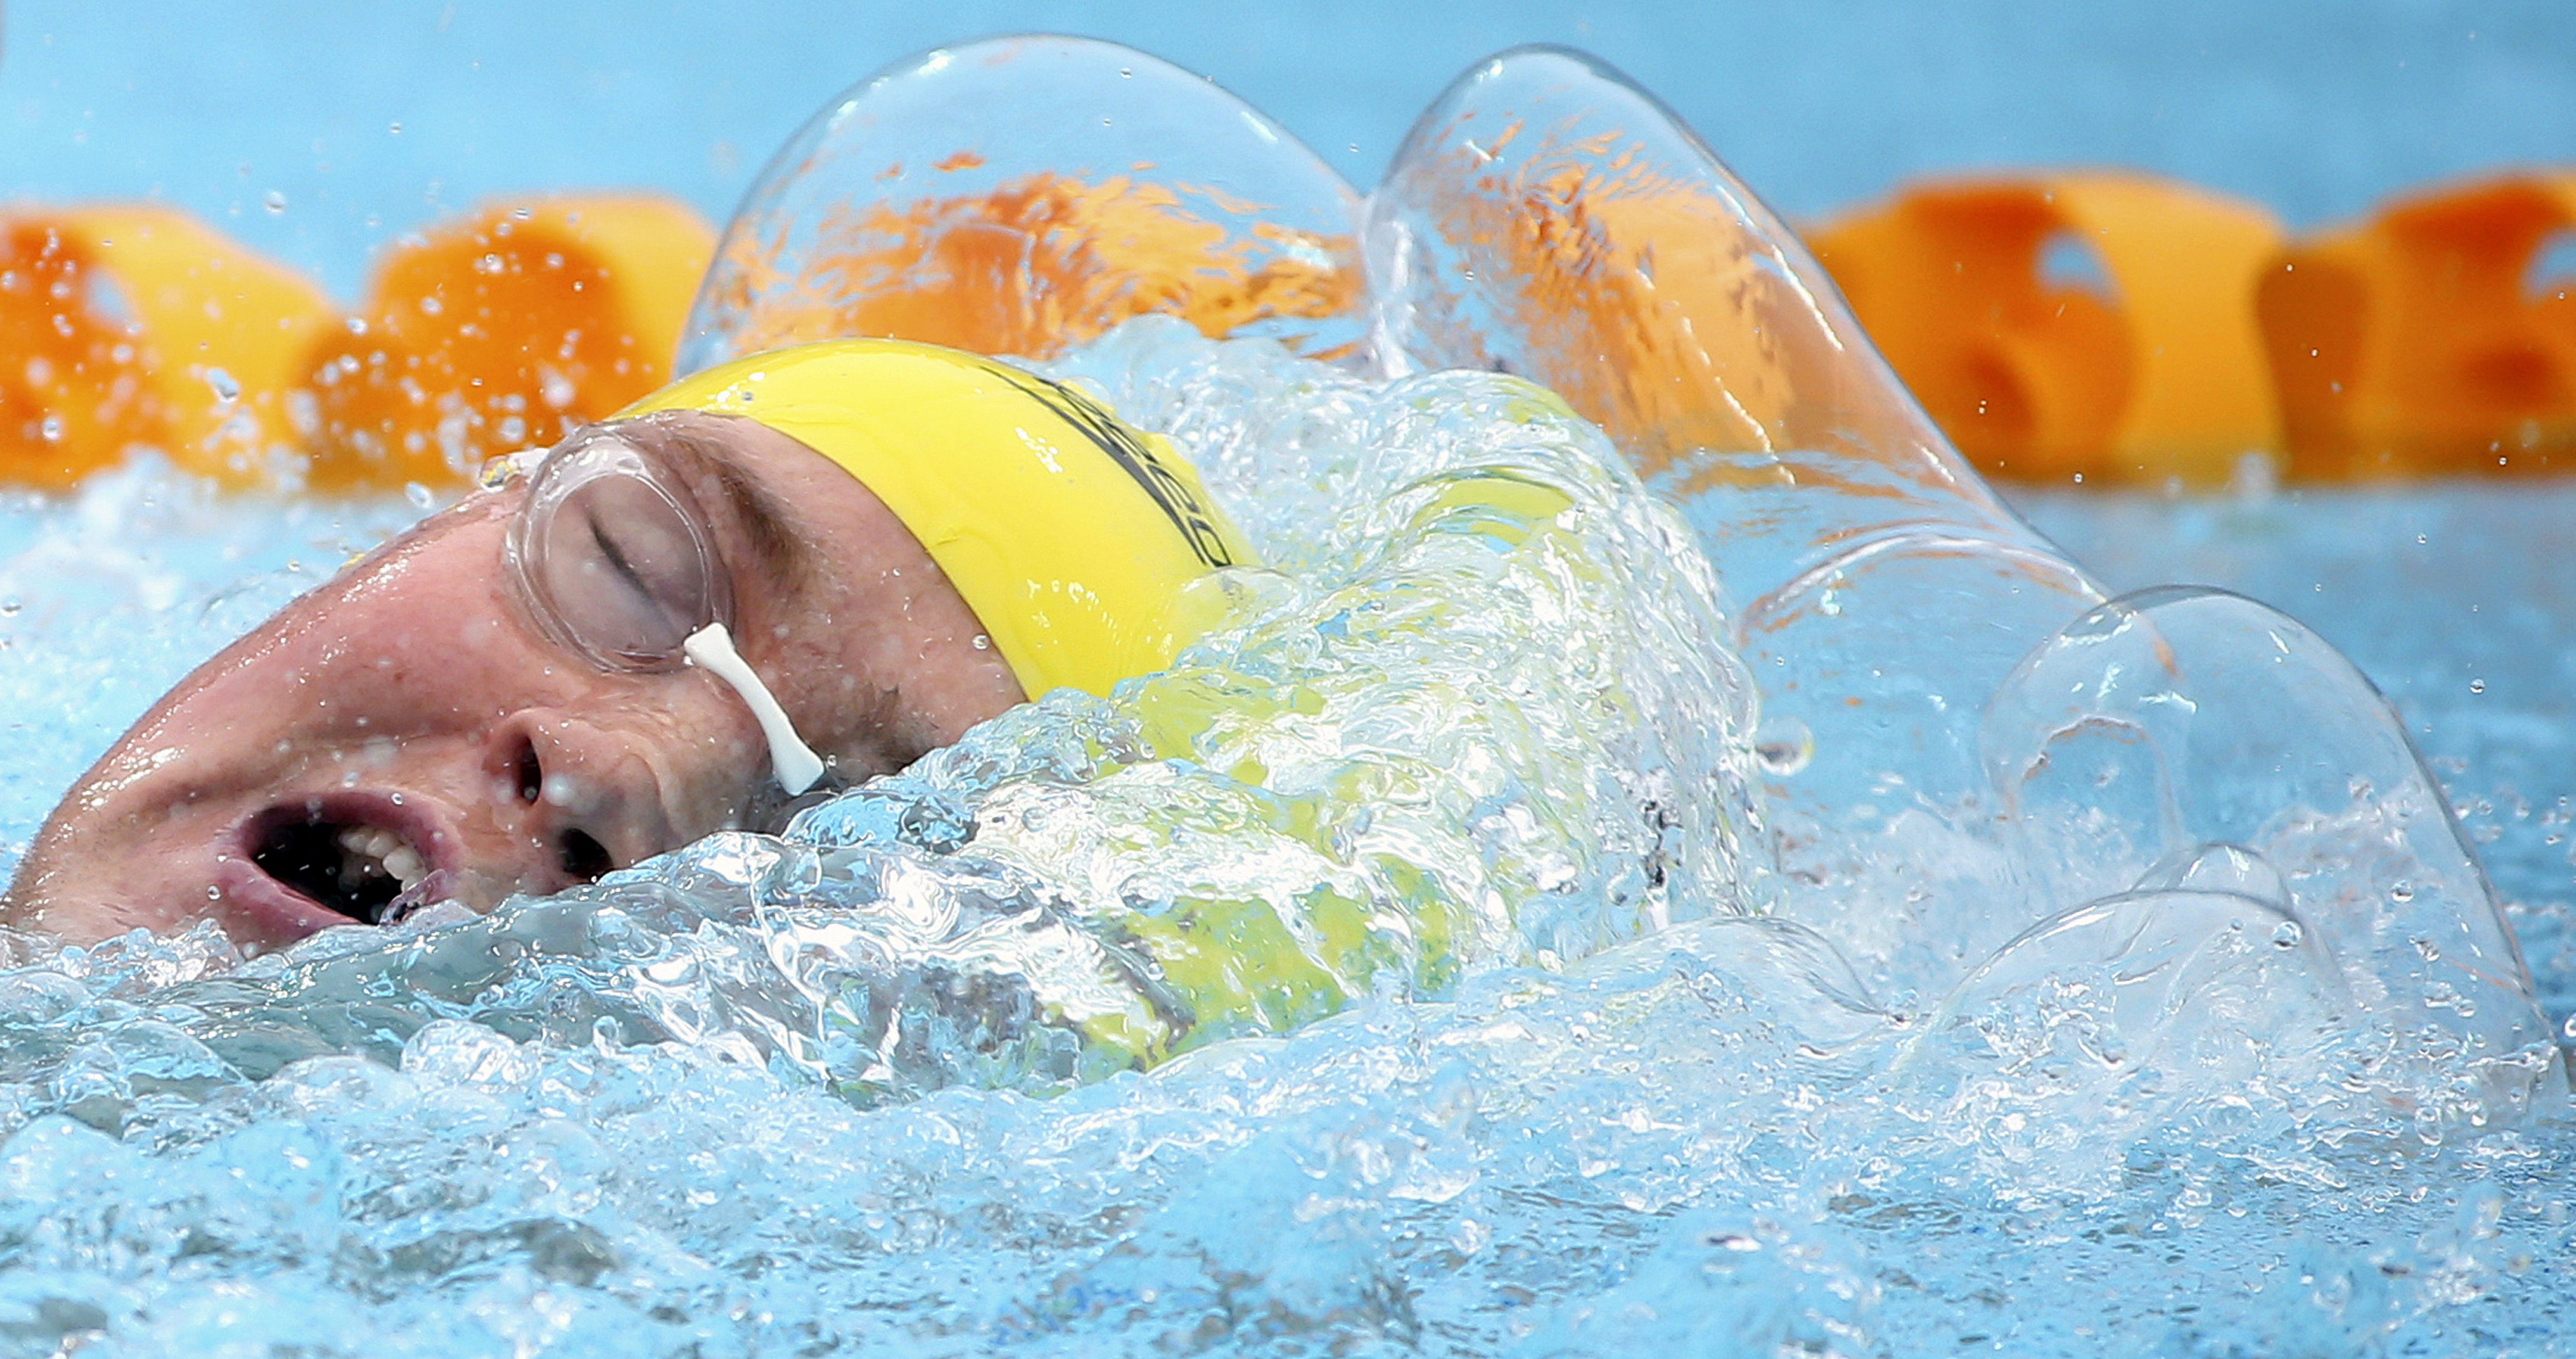 FILE - In this file photo from Aug. 23, 2014, a pressure bubble forms ahead of David McKeon of Australia as he swims a men's 400-meter freestyle heat at the Pan Pacific swimming championships in Gold Coast, Australia. Brother and sister David and Emma McK